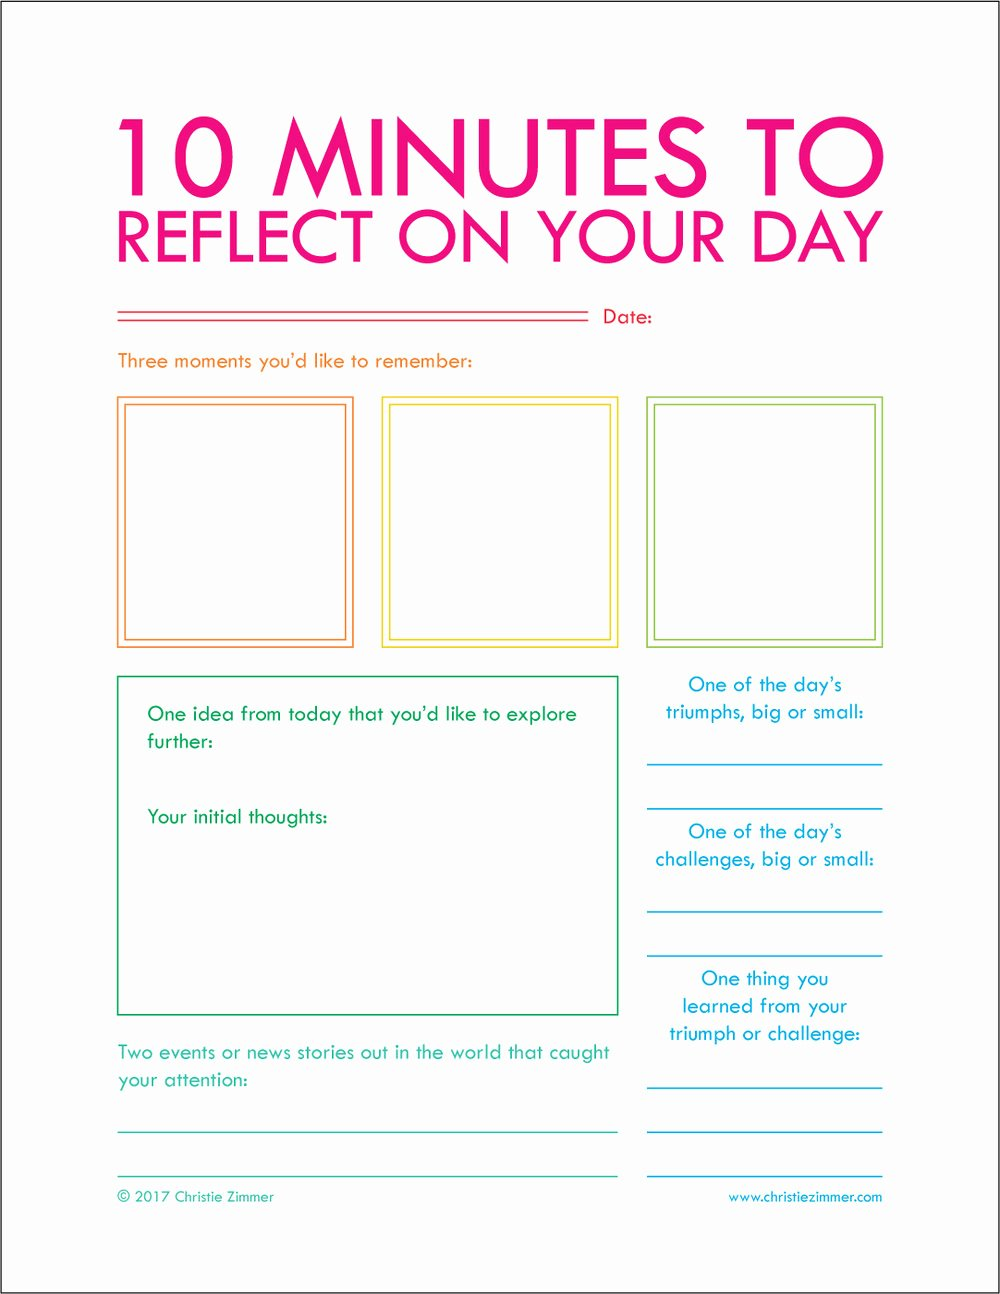 Five Minute Journal Template Inspirational Printables — Christie Zimmer